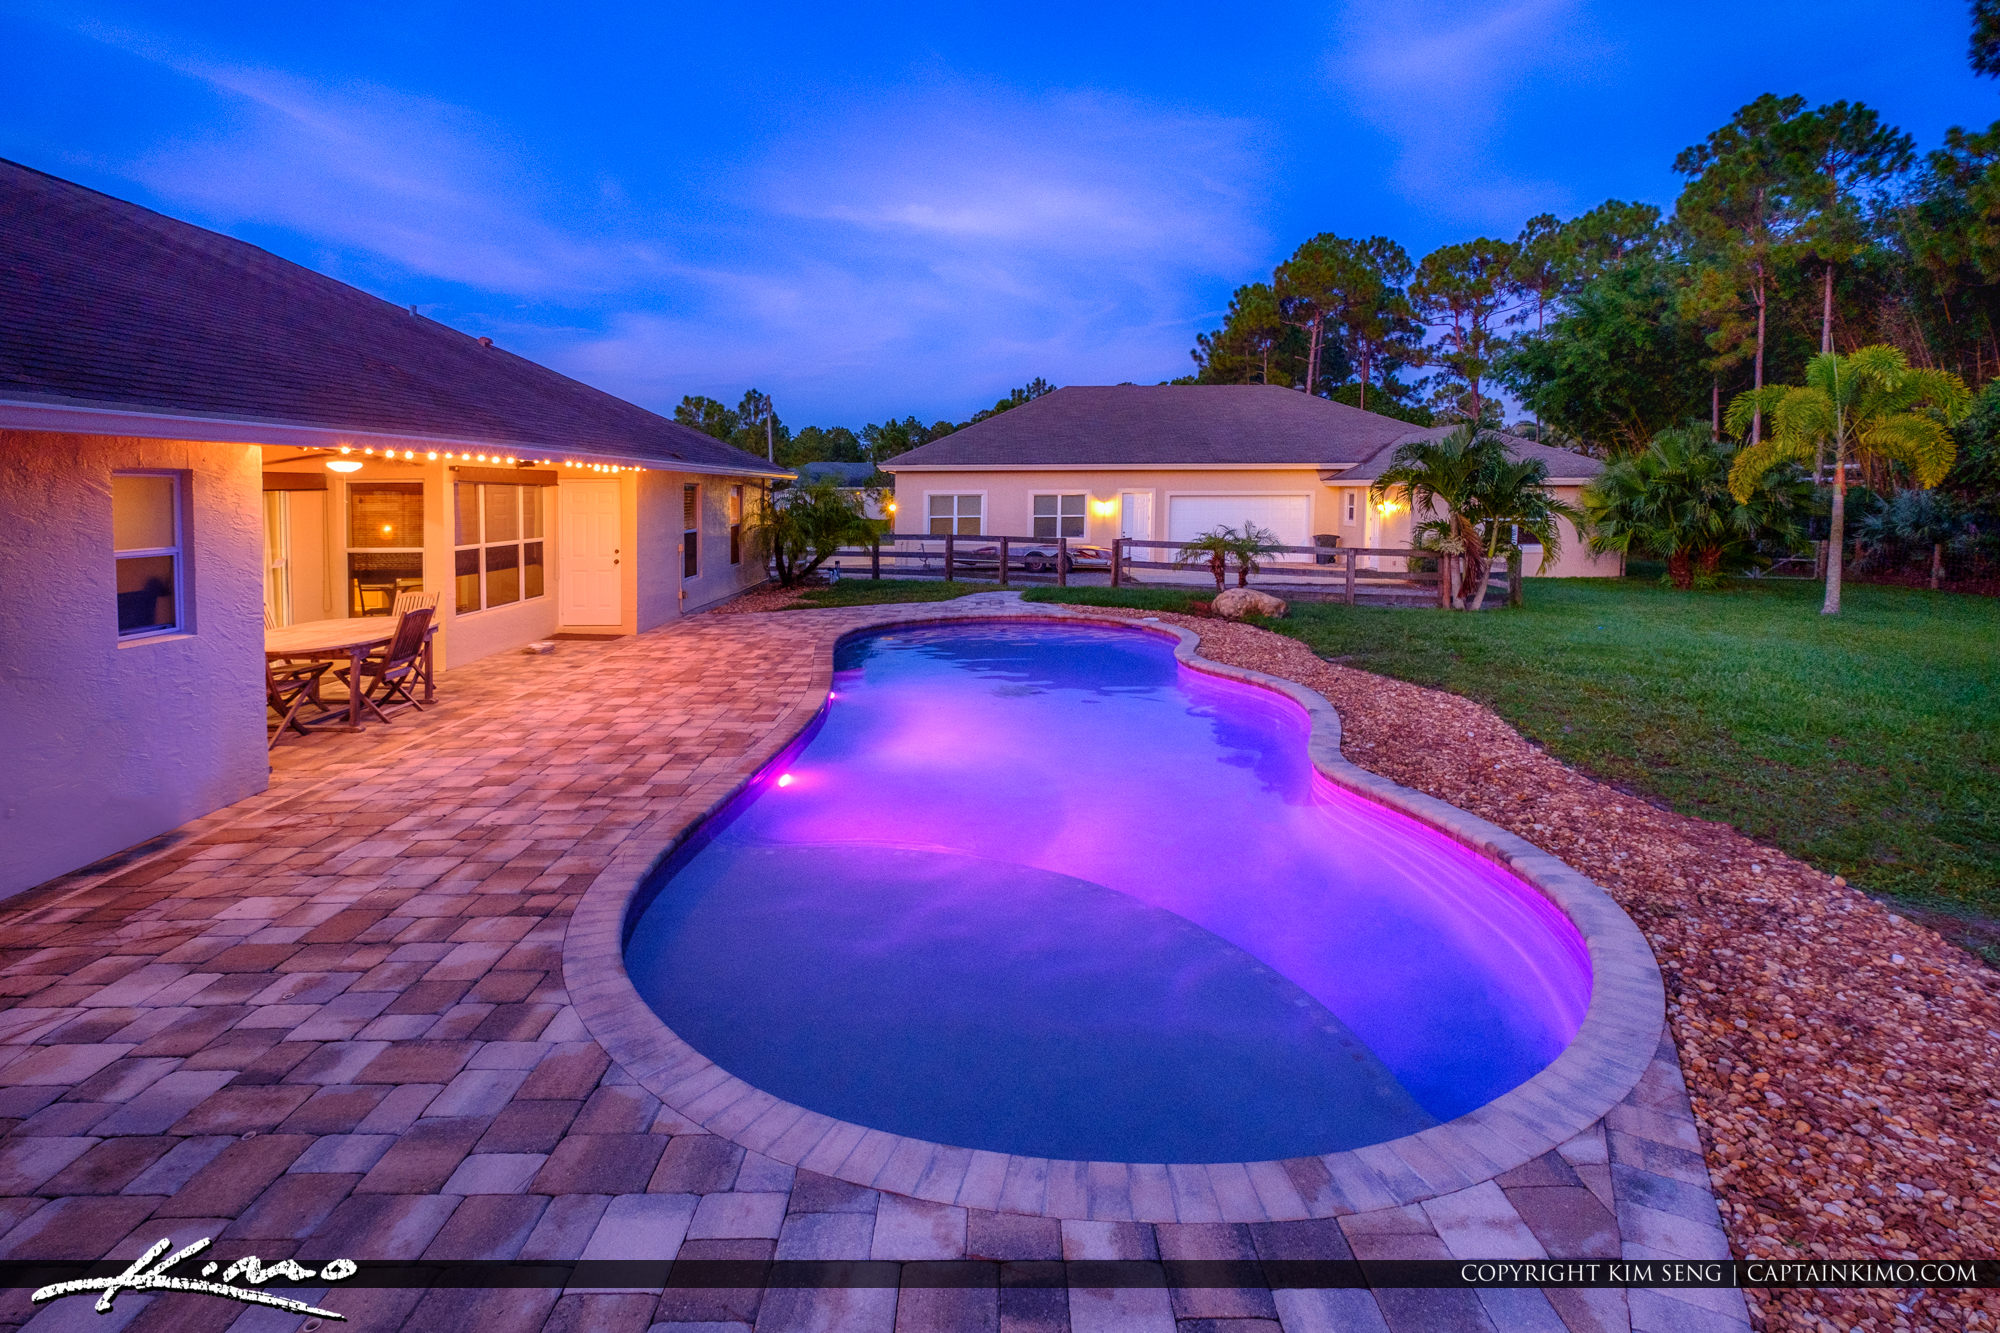 Real Estate Photography Loxahatchee Florida Twilight Pool Shot